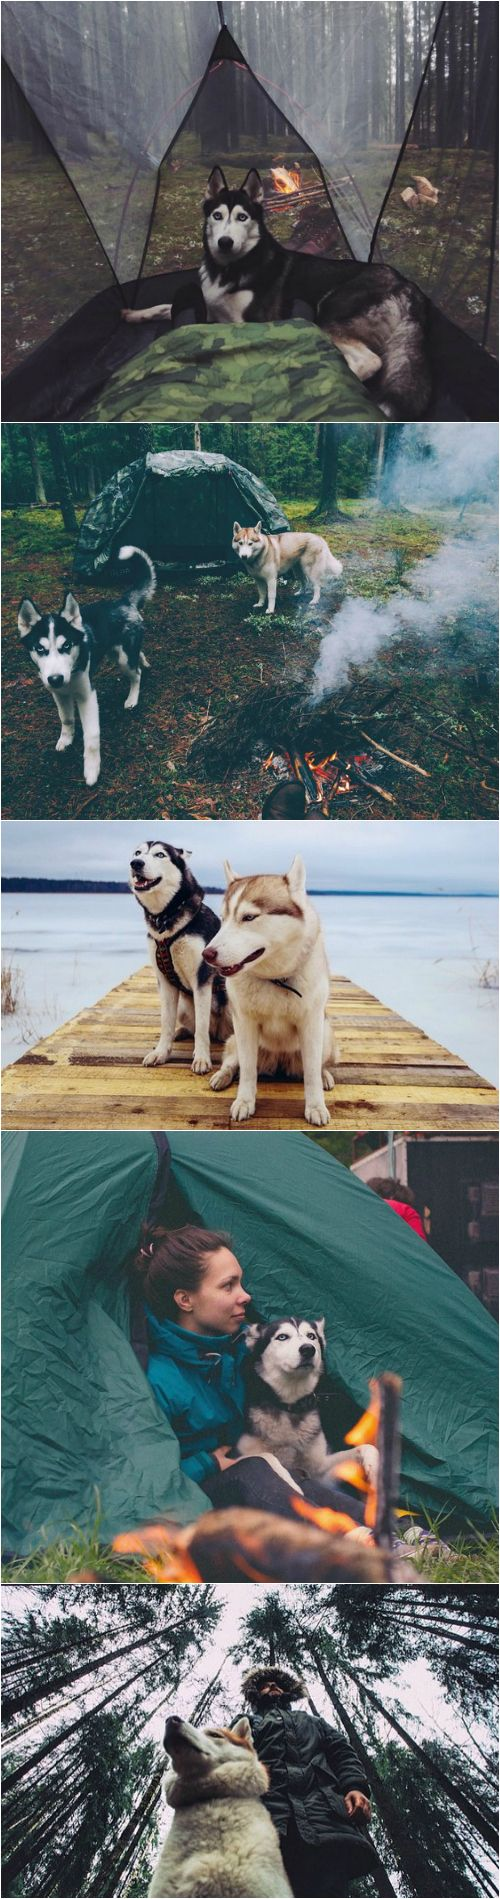 Siberian huskies make excellent partners for cold weather camping.